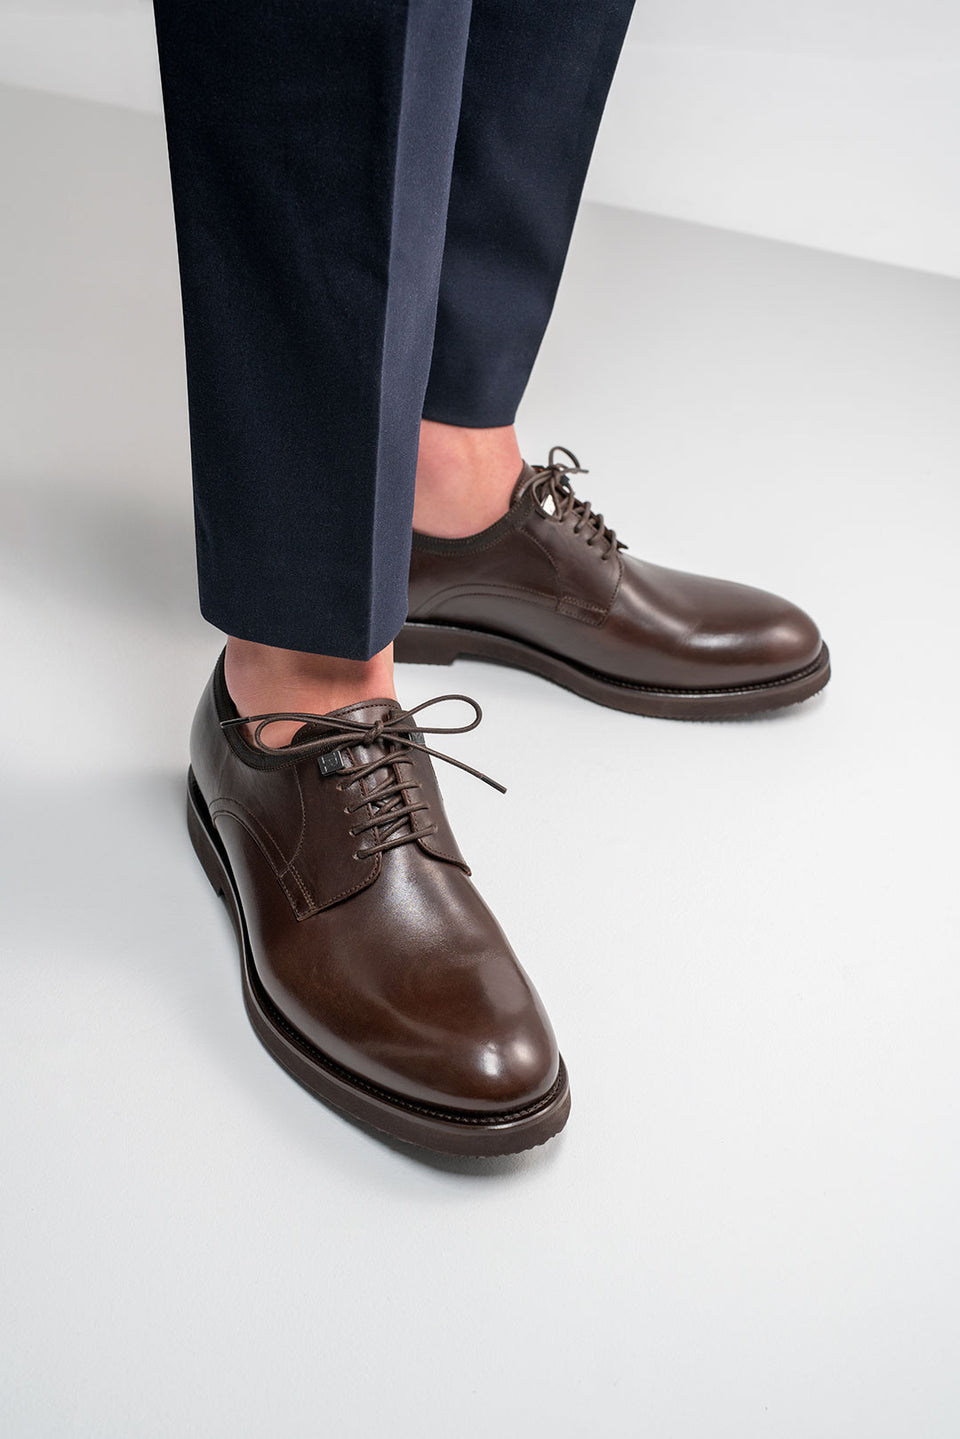 001 - Derby in Dark Brown Calfskin